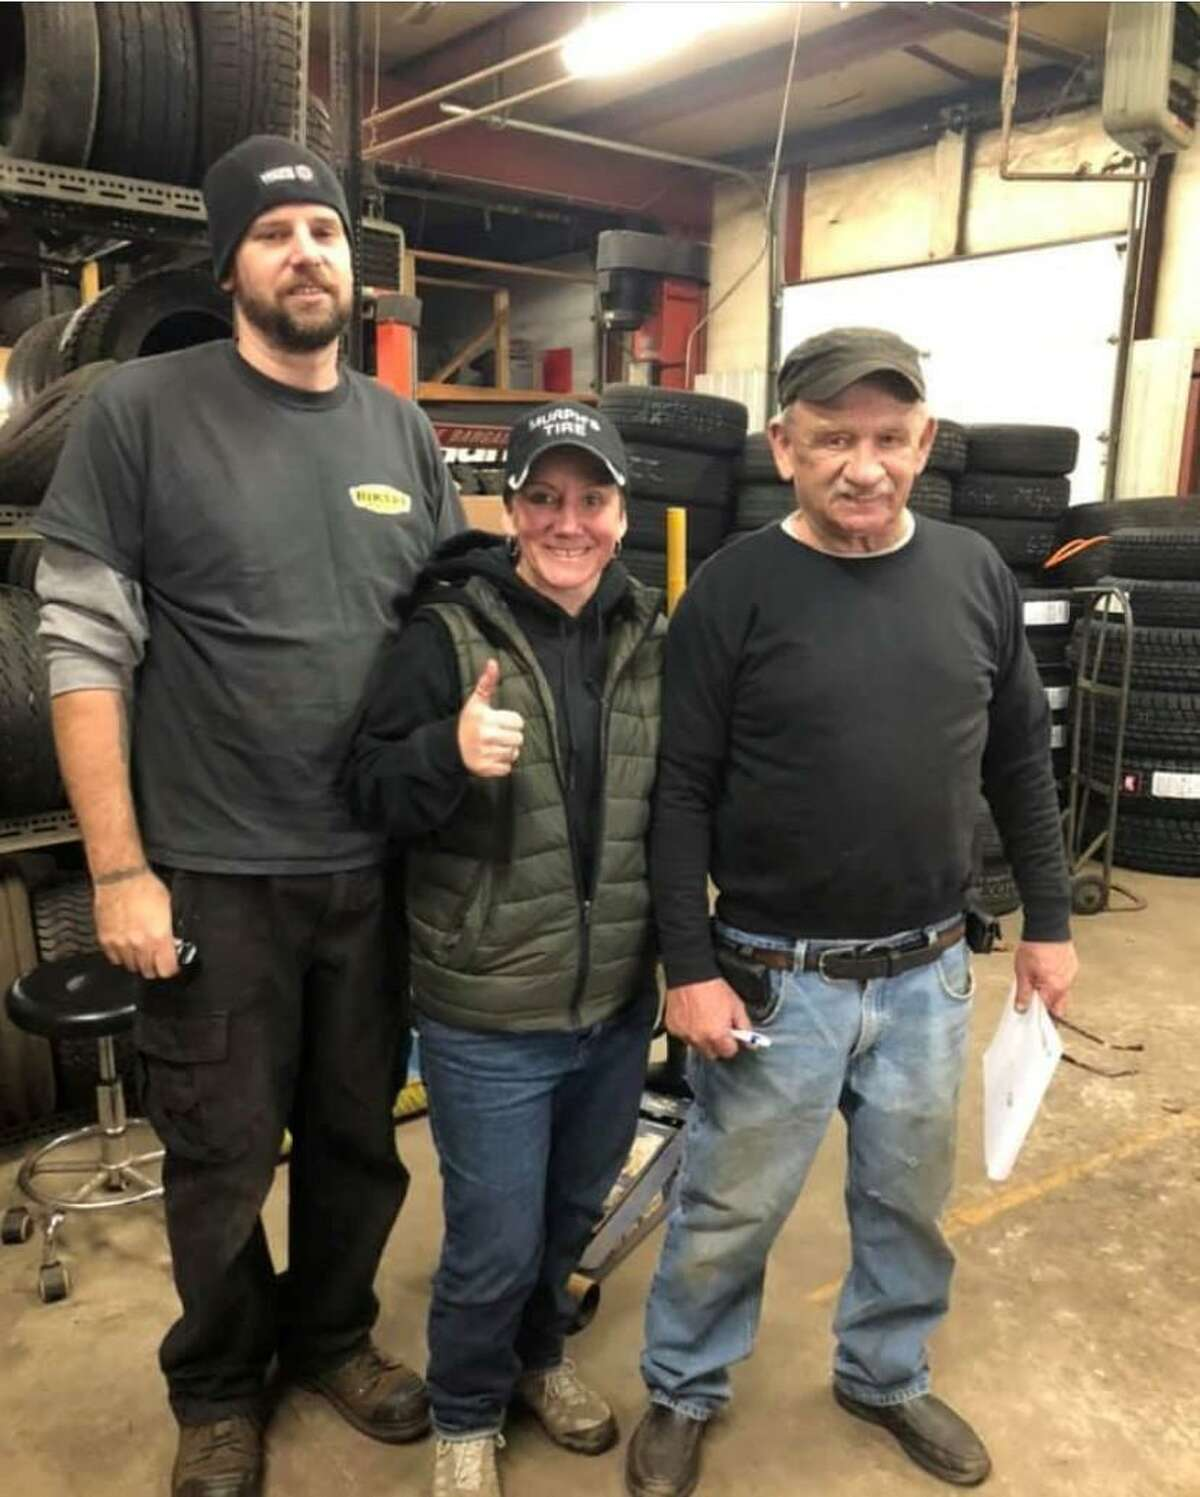 Gary Murphy, right, founder of Murphy's Tire Shop in New Milford, is shown with his daughter Beth and her husband, Jeff Taylor, the new owners of the business located at 11 Howland Road.